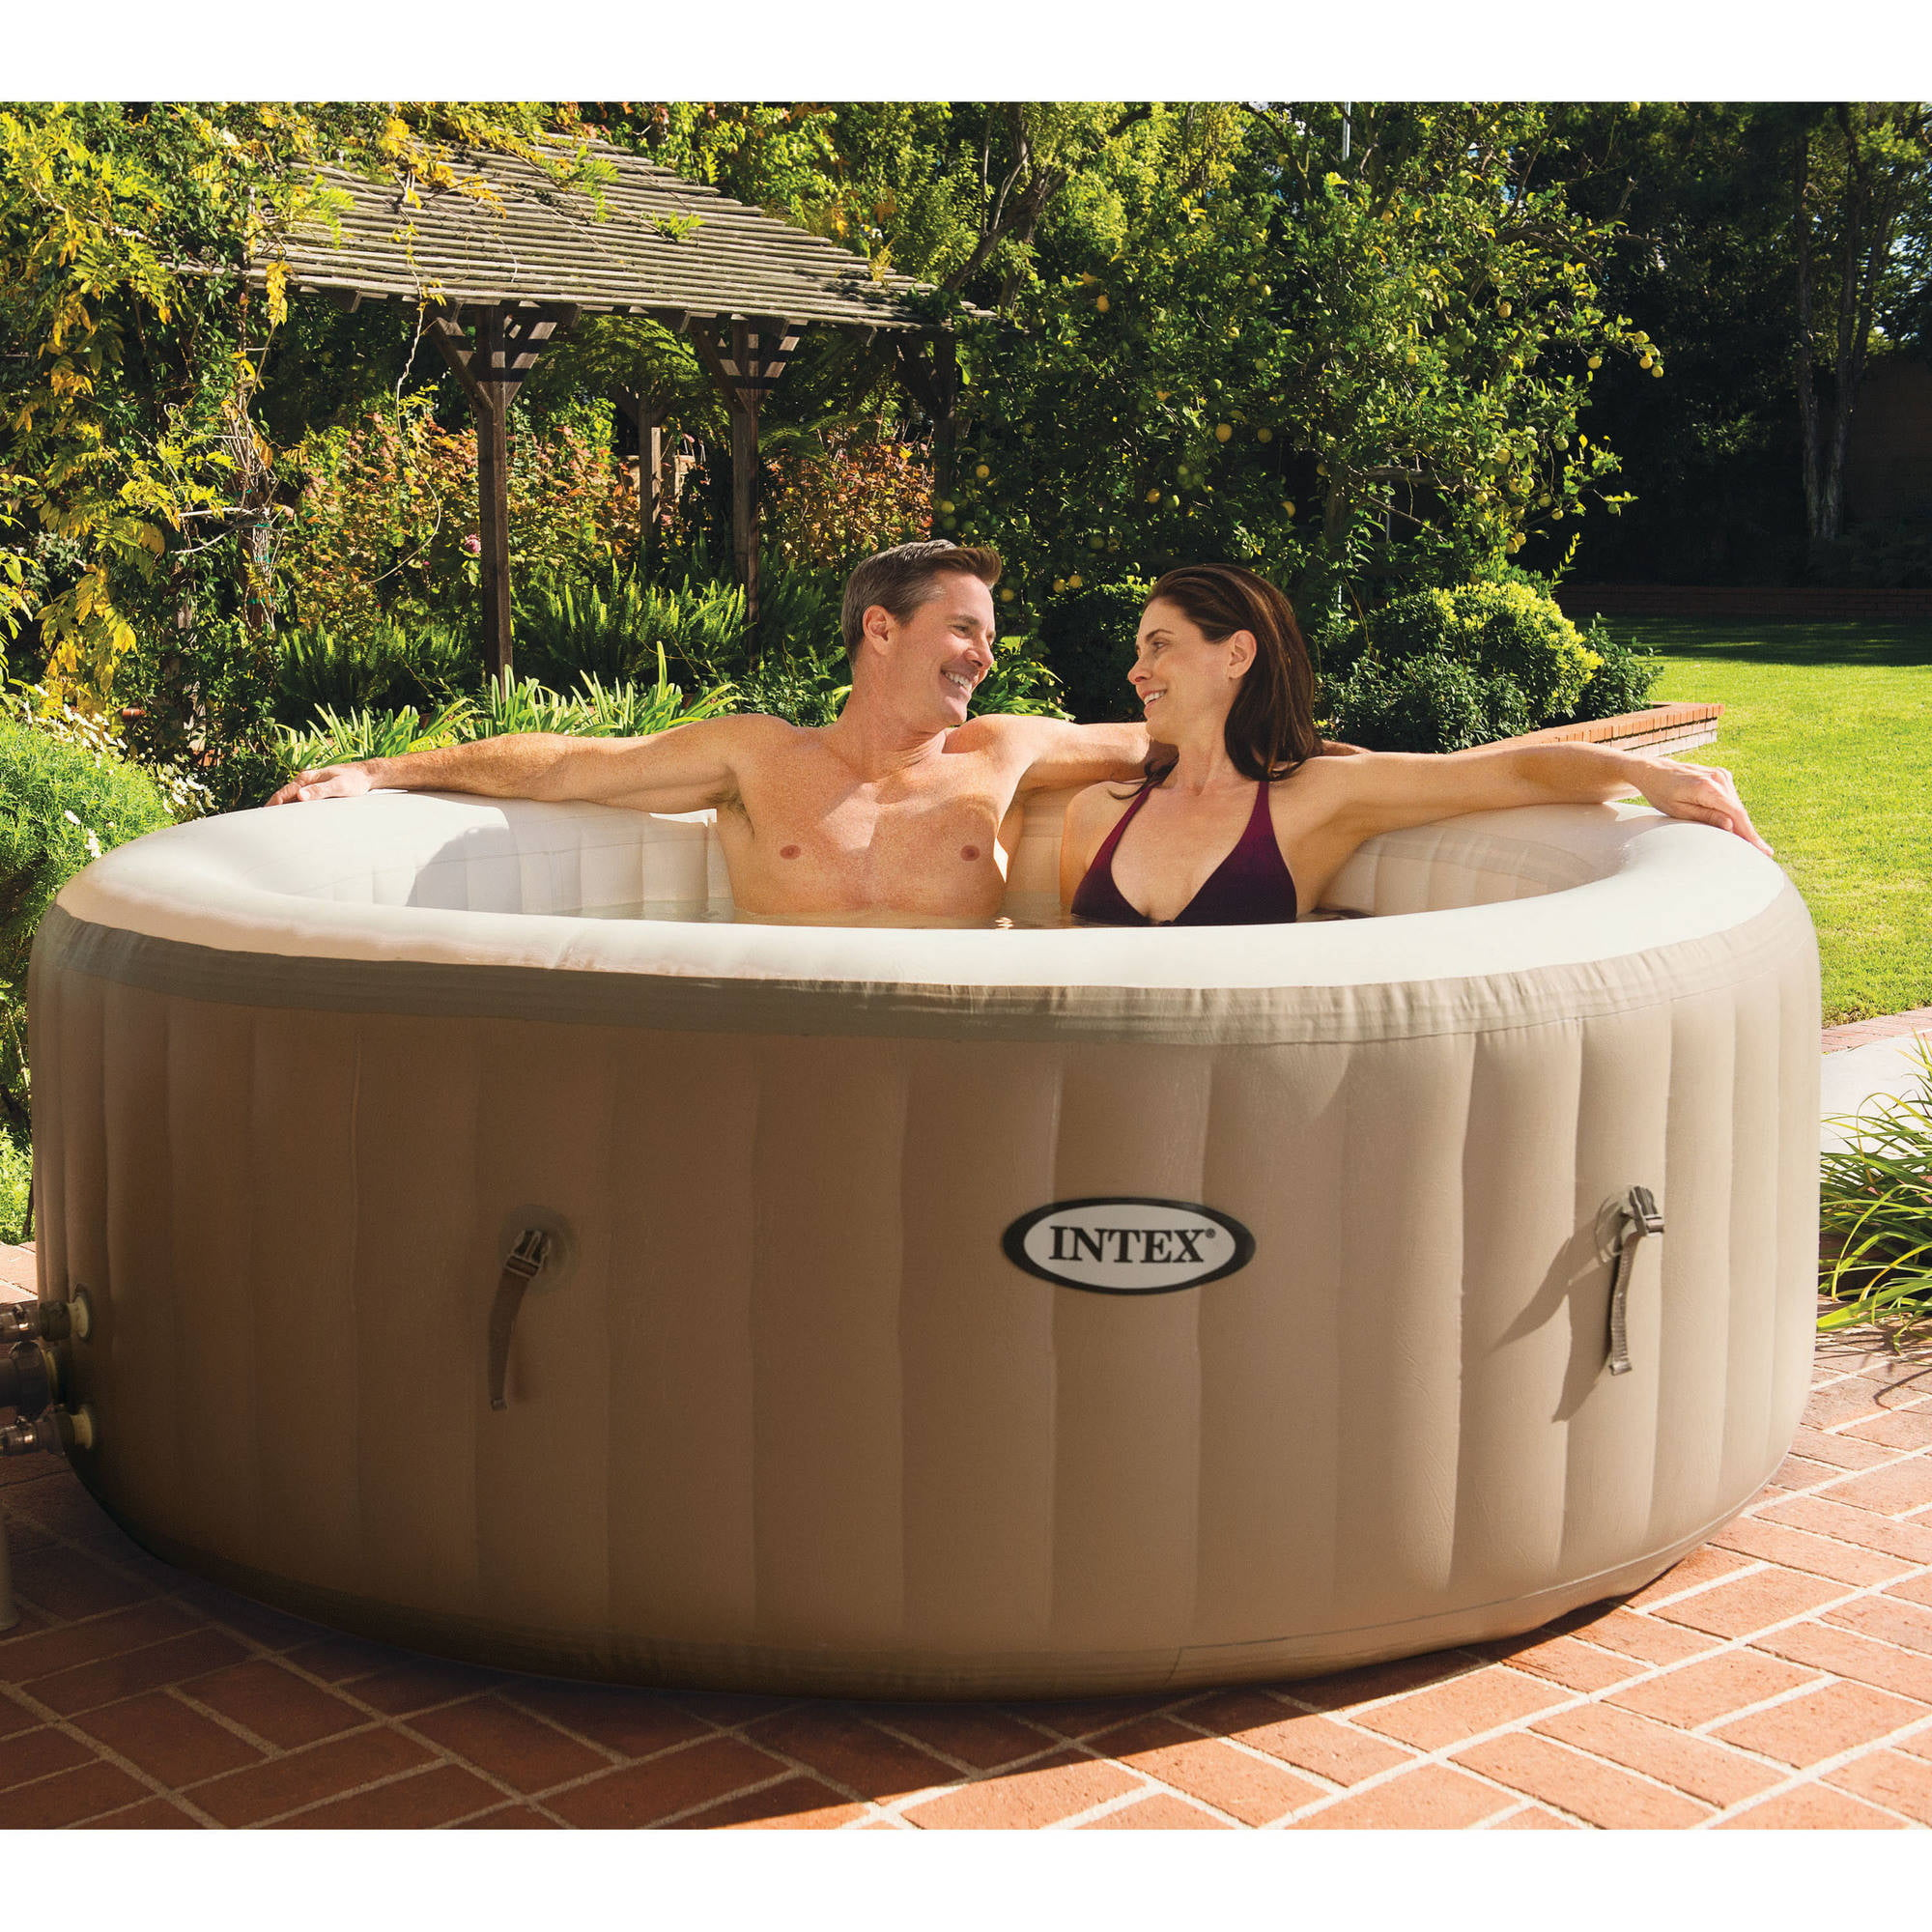 Inflatable Hot Tubs